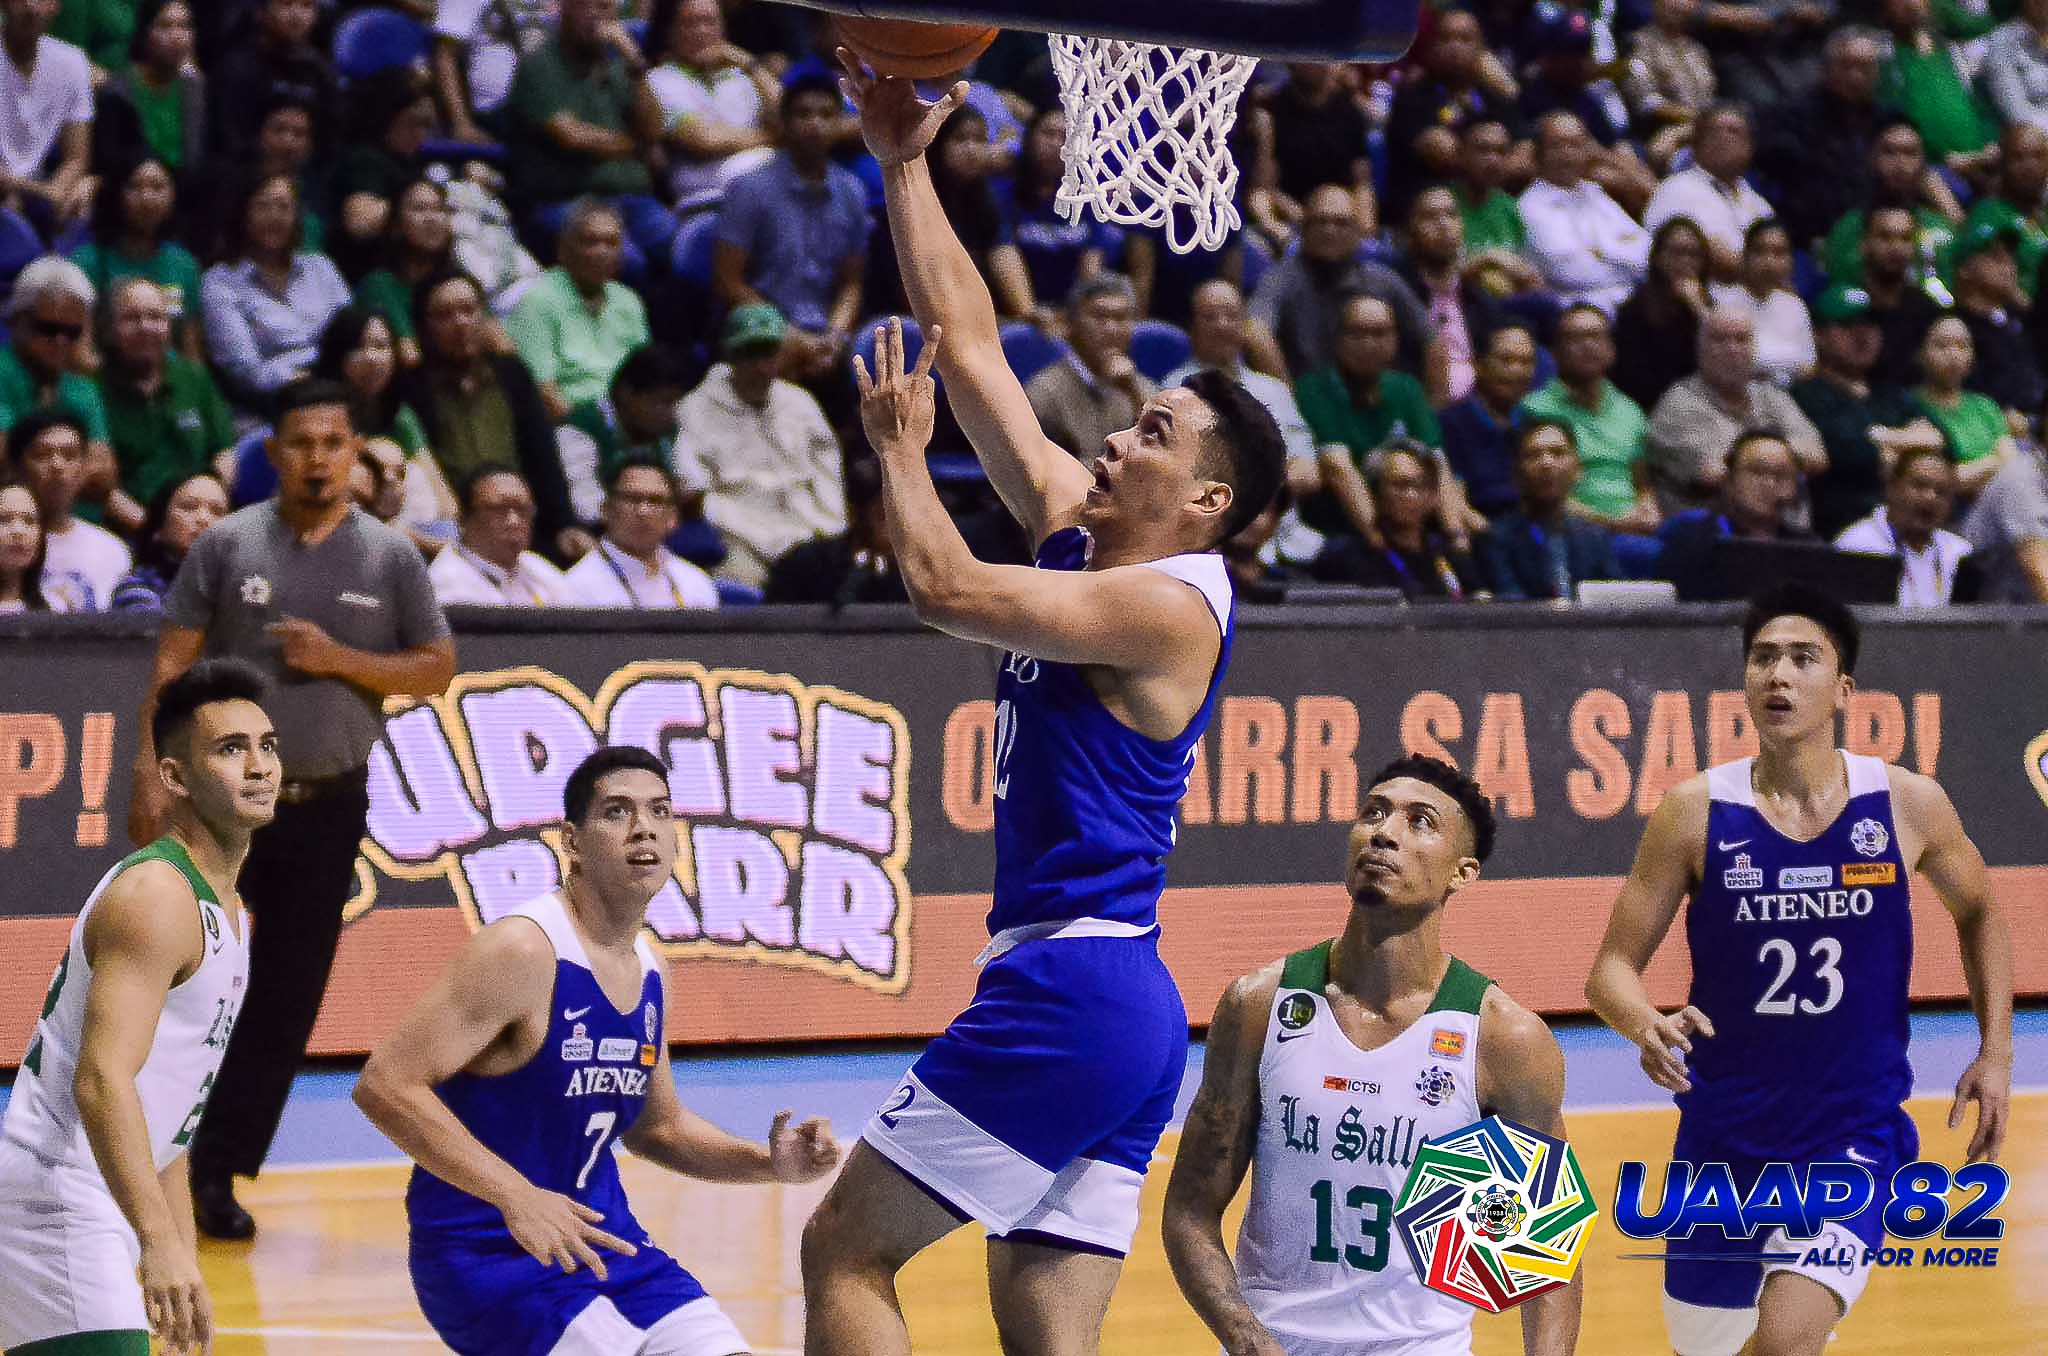 Ateneo overpowers La Salle to grab share of lead